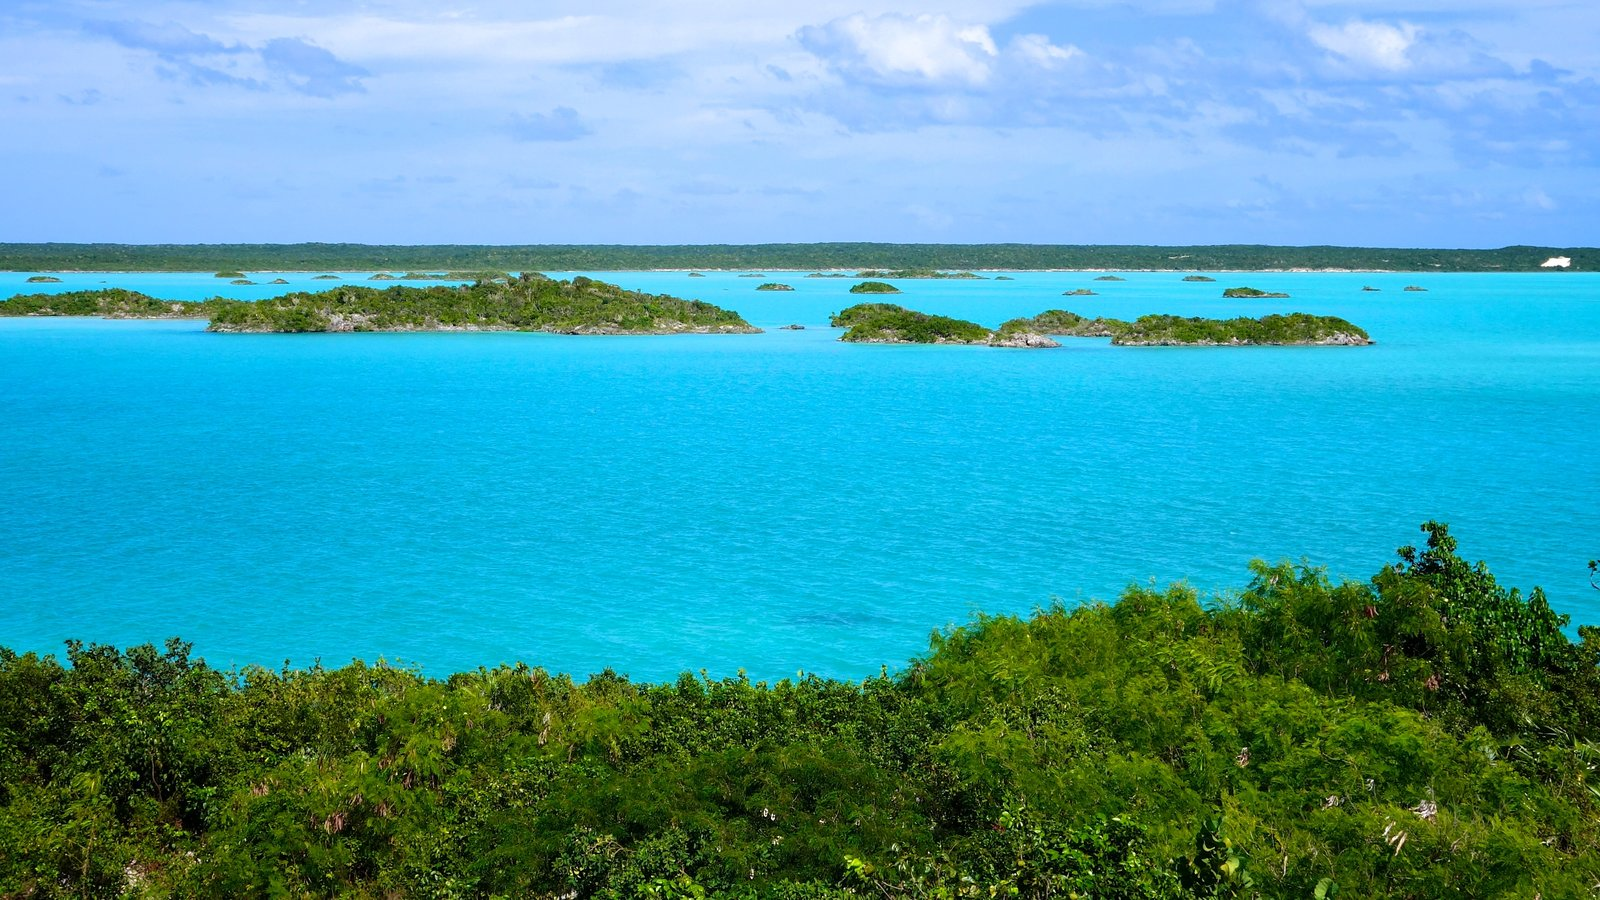 Providenciales featuring landscape views, general coastal views and island images